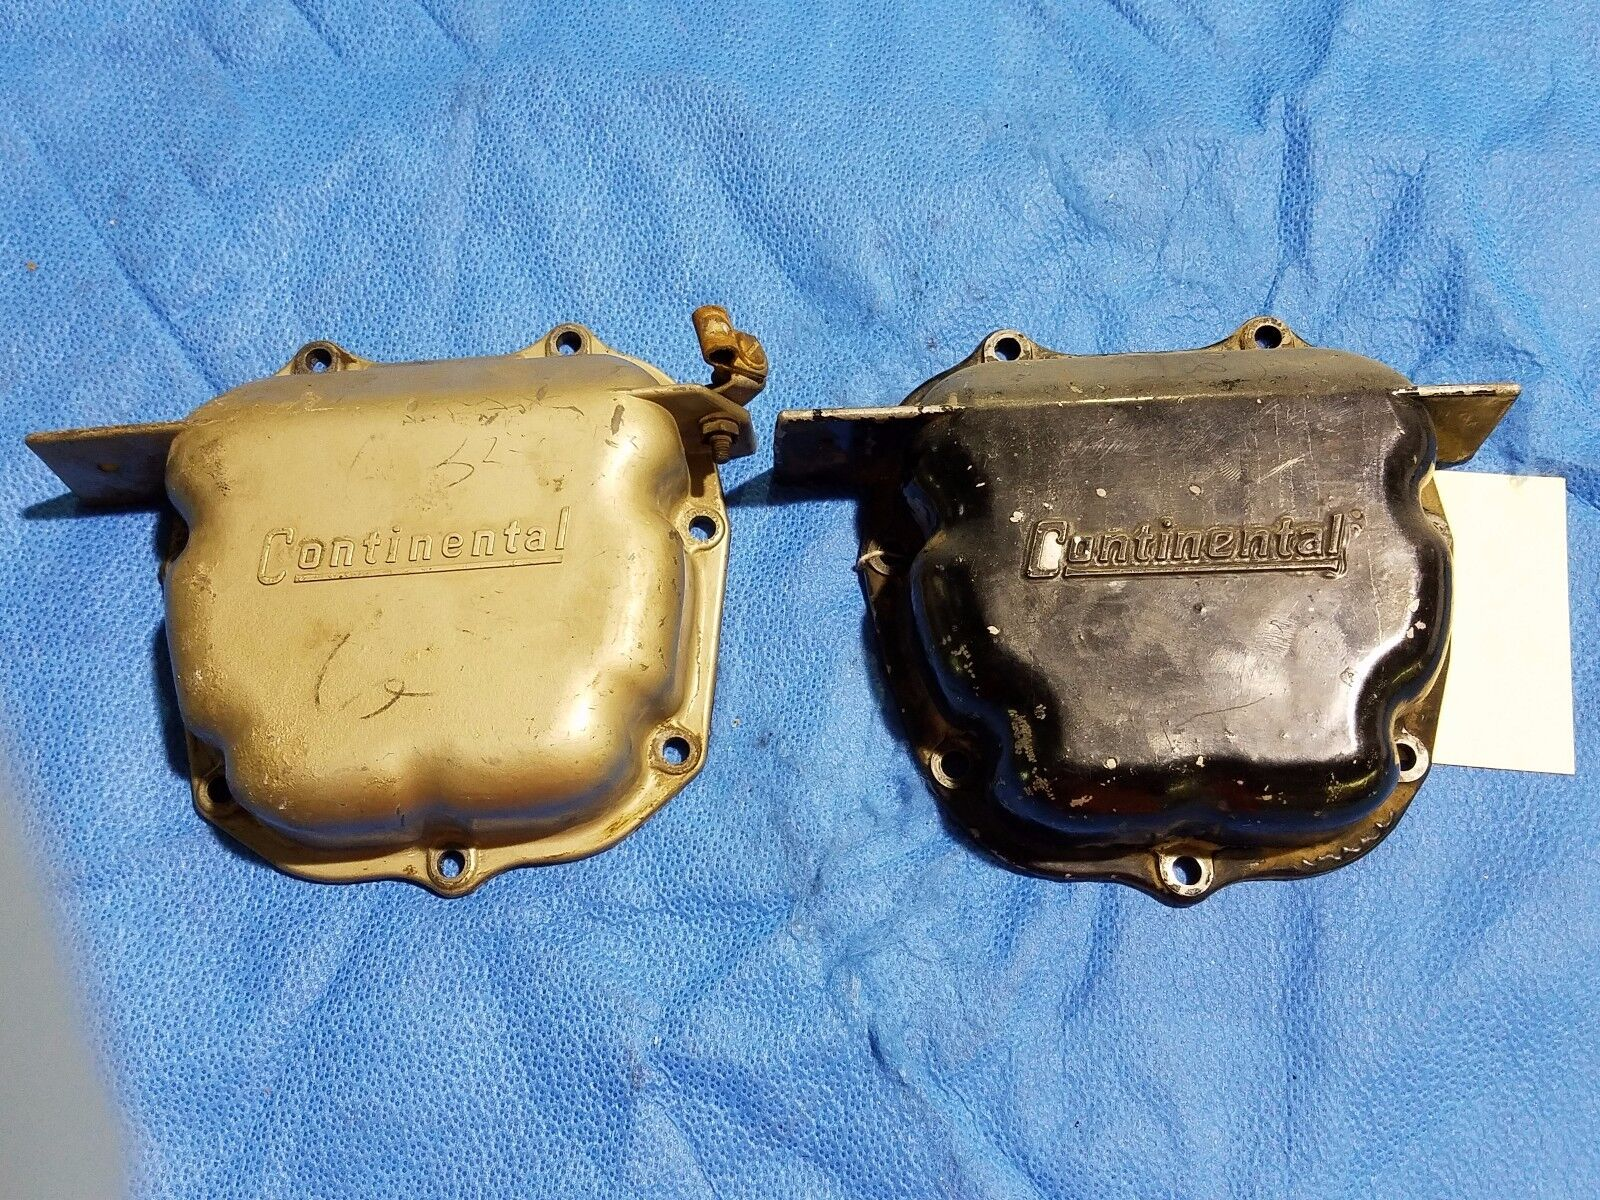 Continental Rocker Covers Set of 2 P/N 532450 (0716-51)